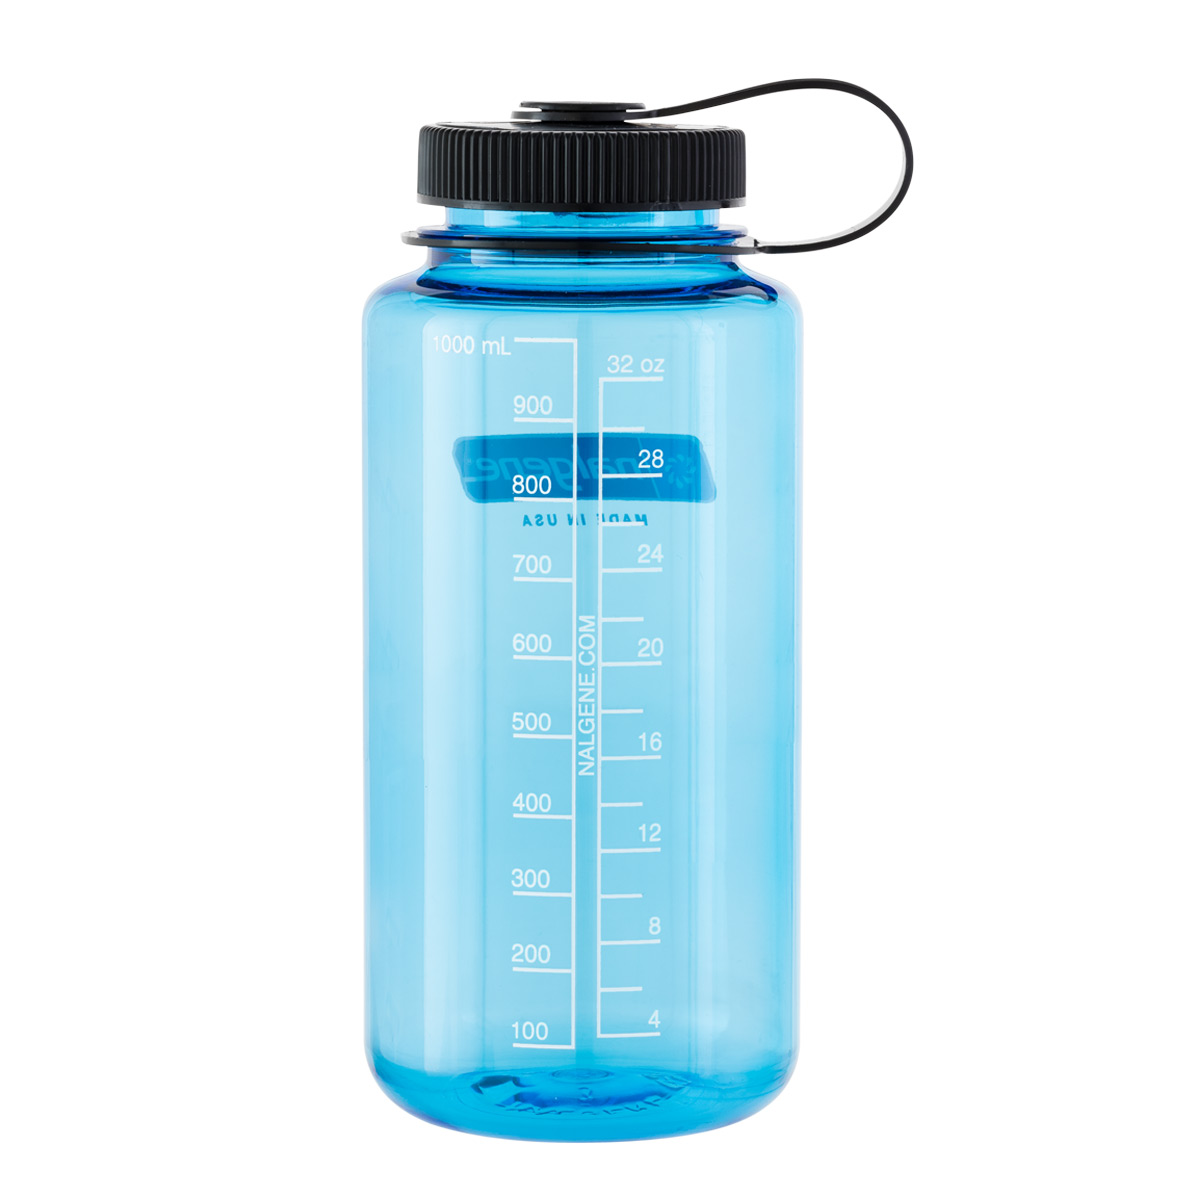 32 oz. Blue Nalgene Leakproof Water Bottle